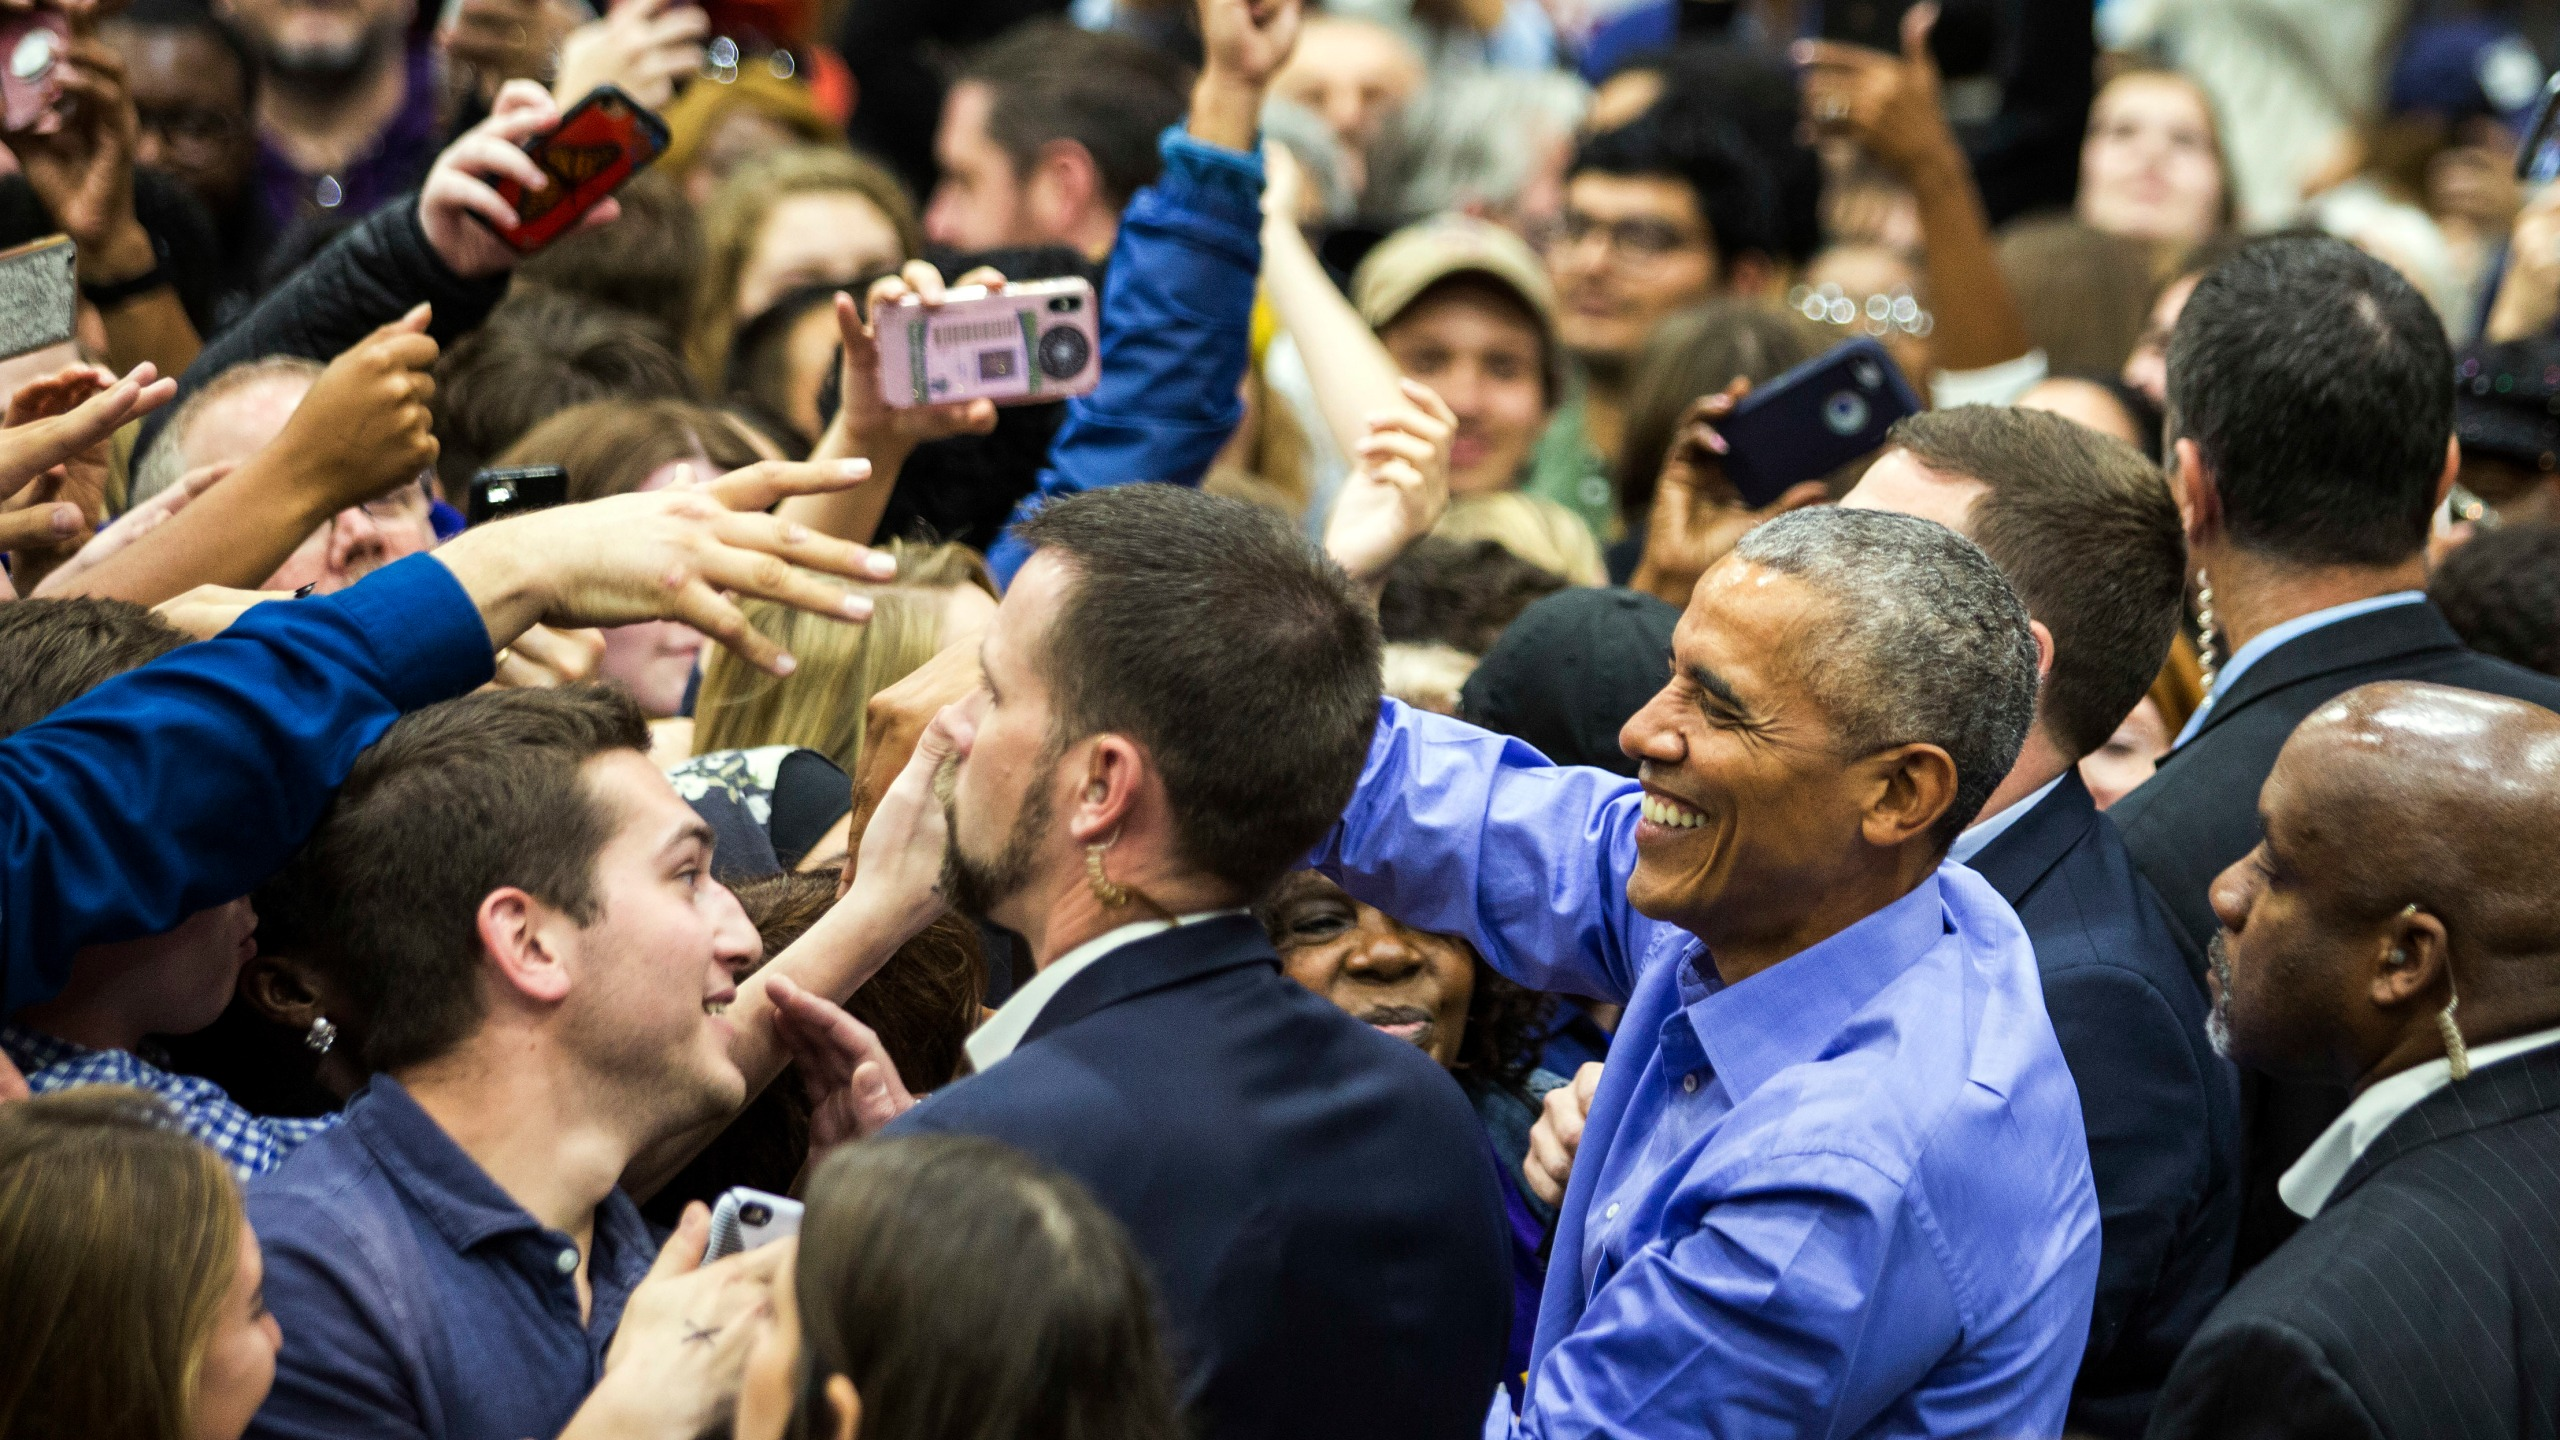 Election_2018-Illinois-Obama_86433-159532.jpg30529649